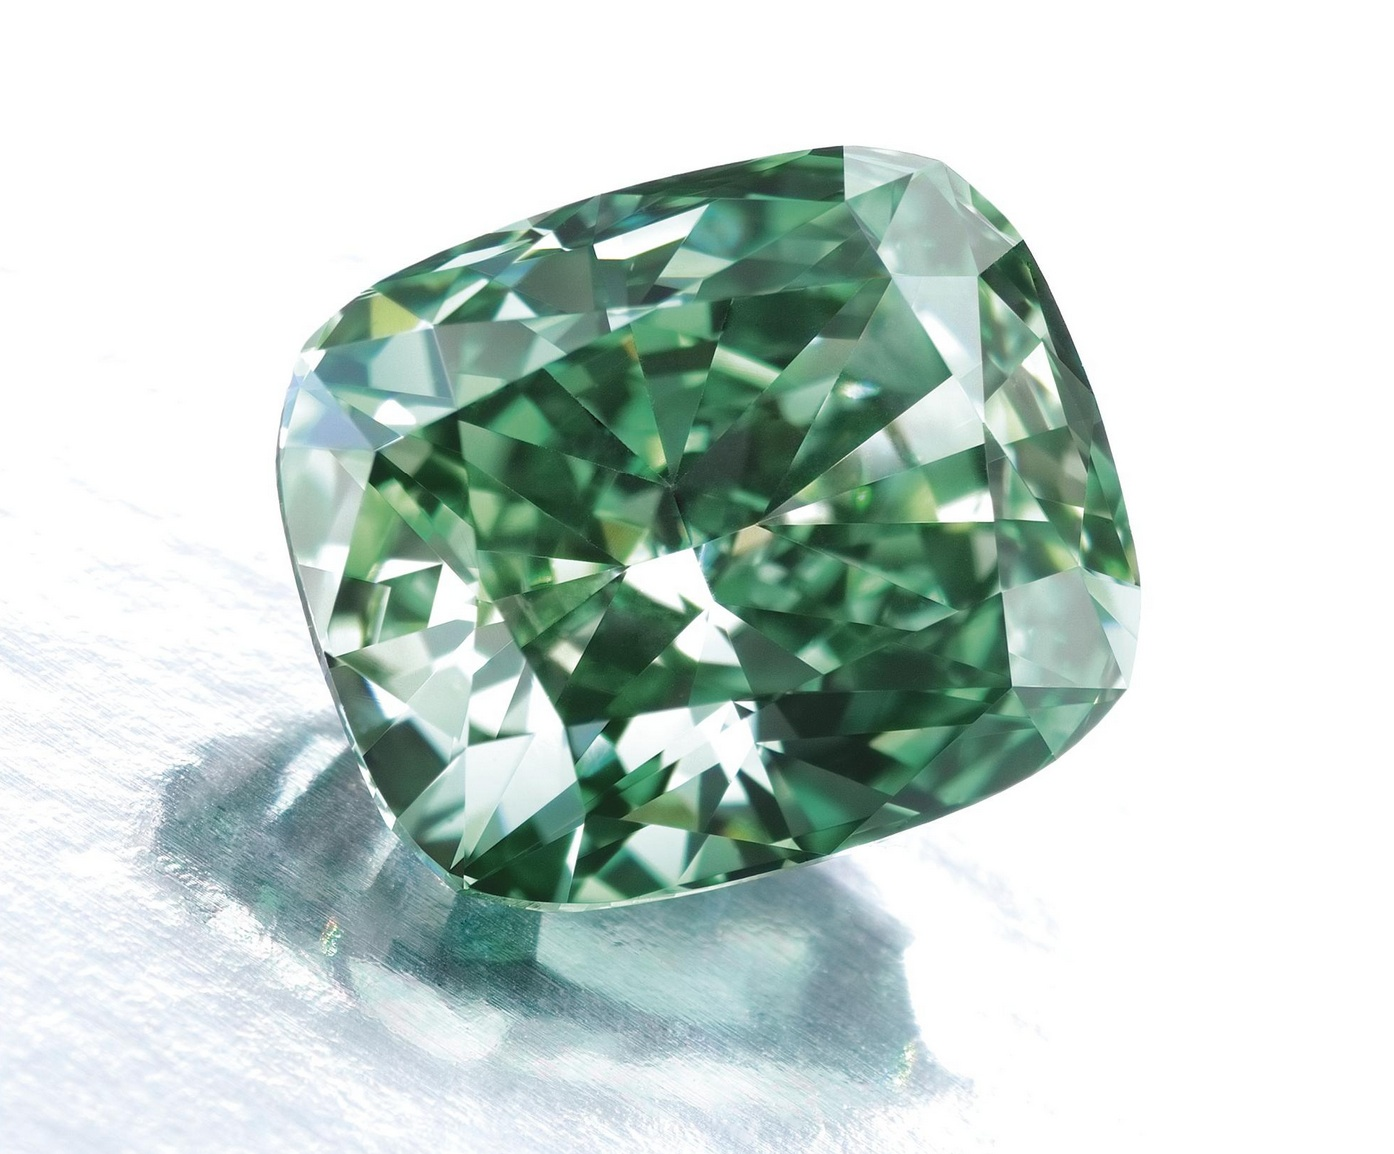 Fancy vivid green diamond weighing 2.52 carats. This rare diamond appeared at Sotheby's 2009 Magnificent Jewels action. Image: Sotheby's